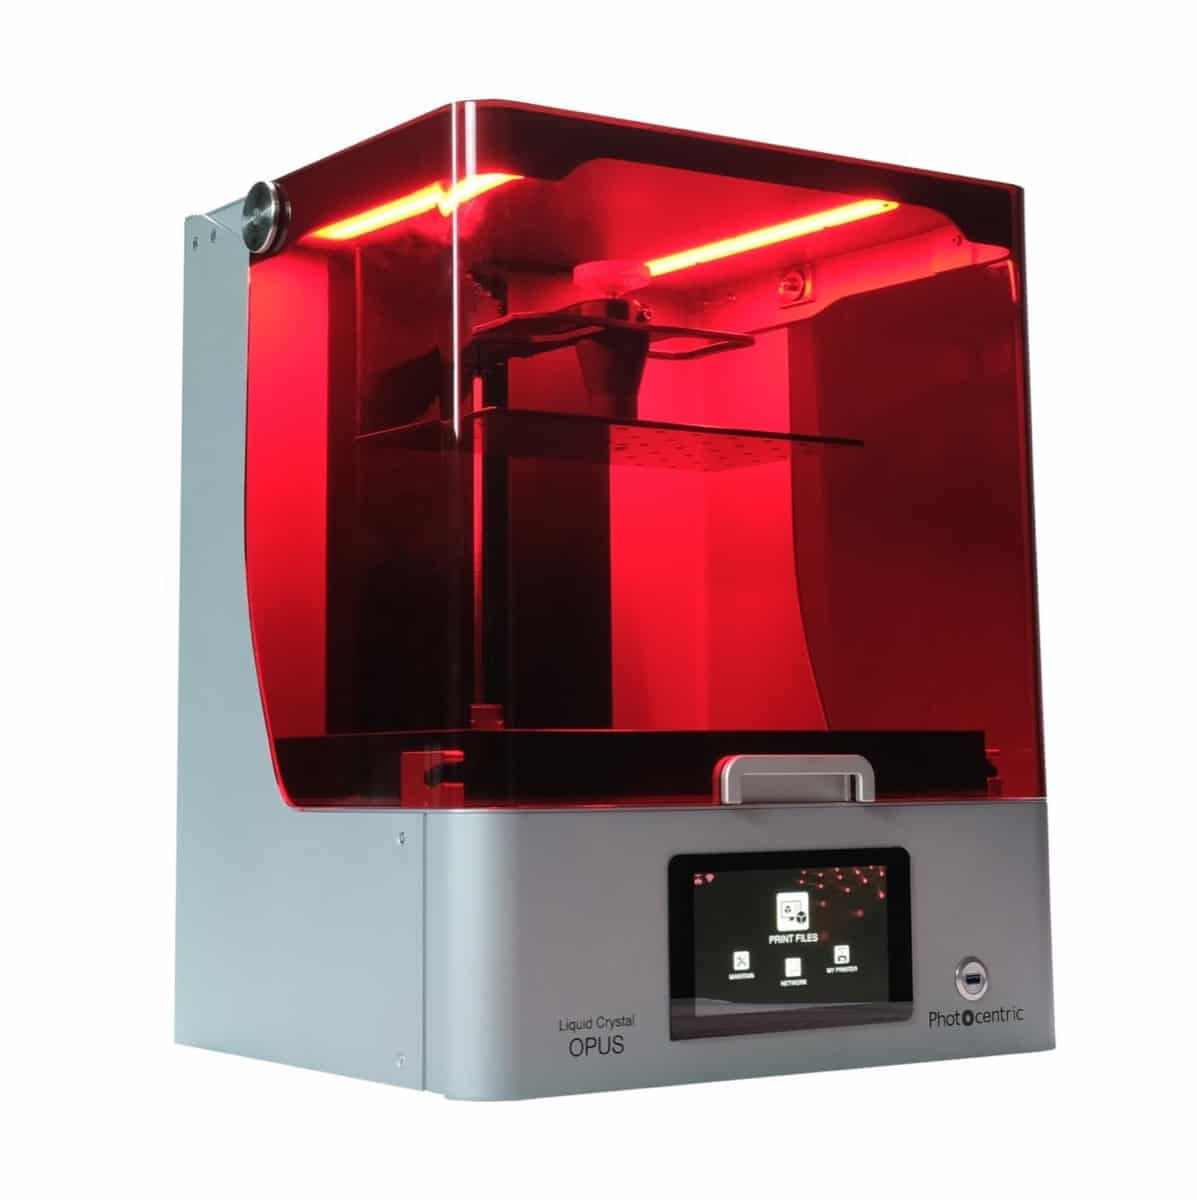 Photocentric launches LC Opus LCD printer